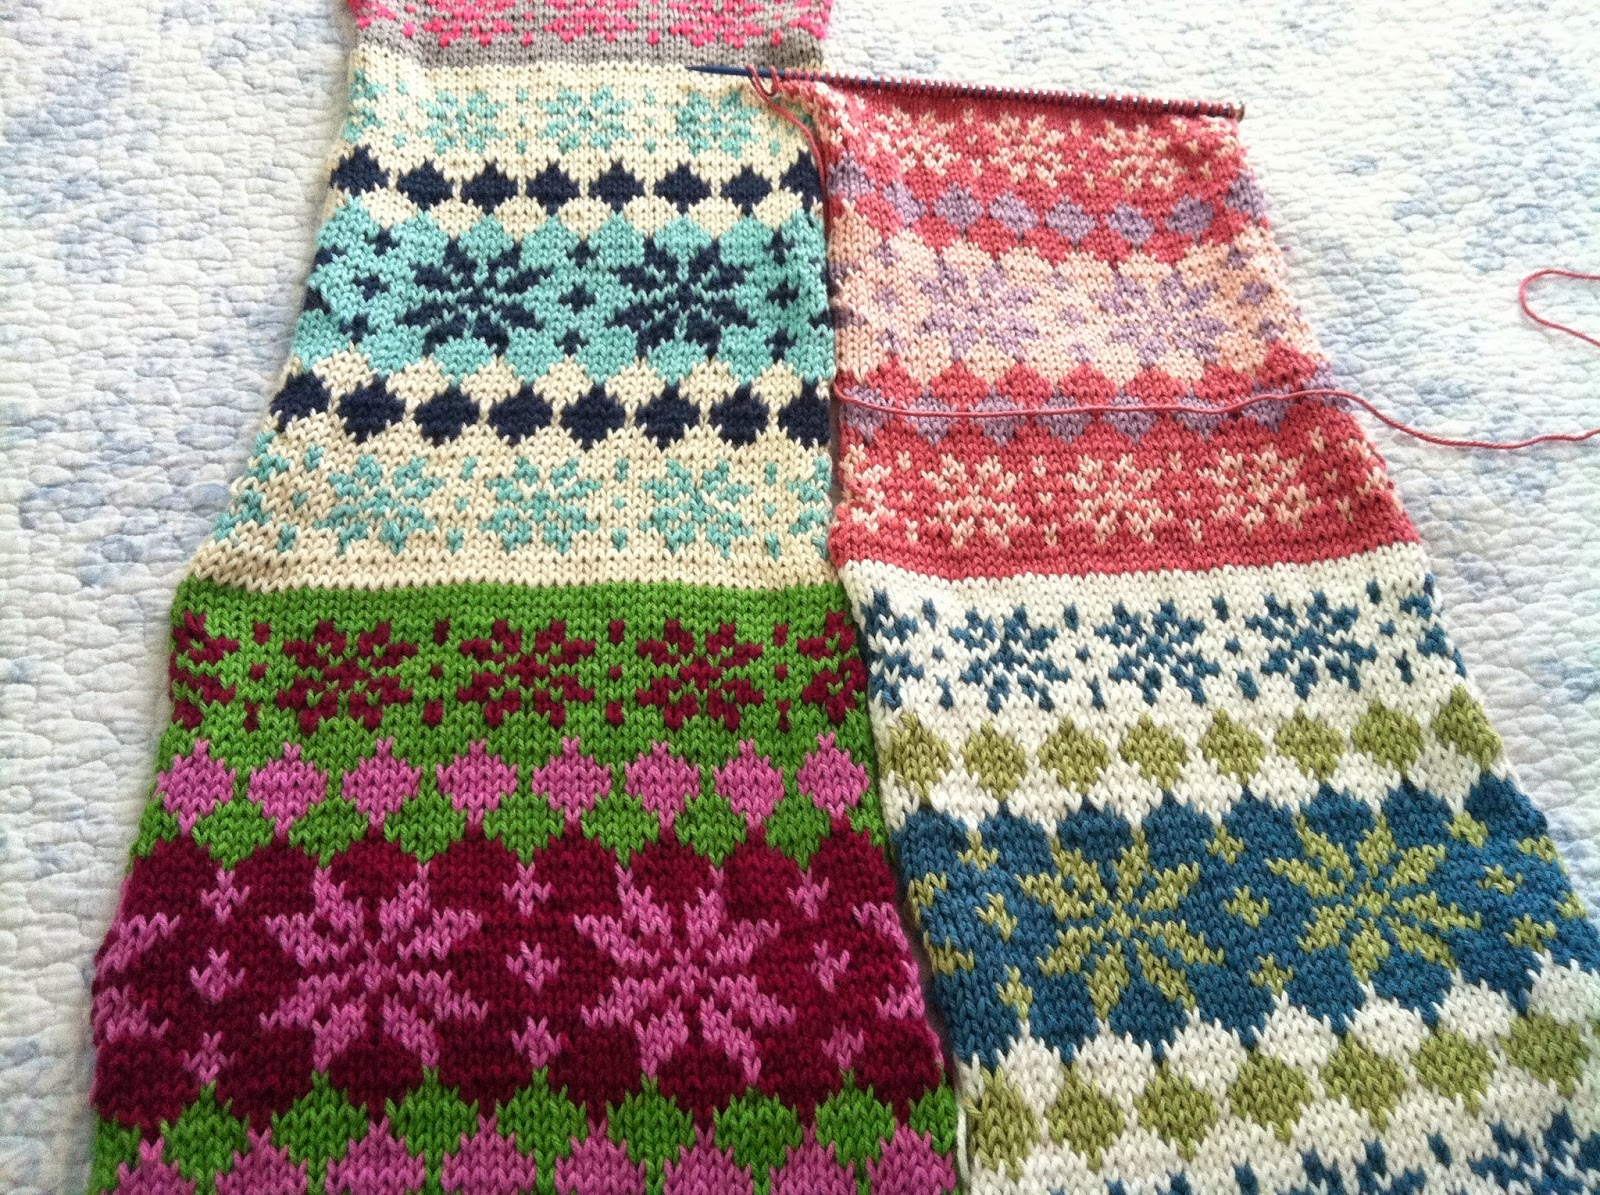 Knitting Cottage: Knitting Spotlight: Blankets